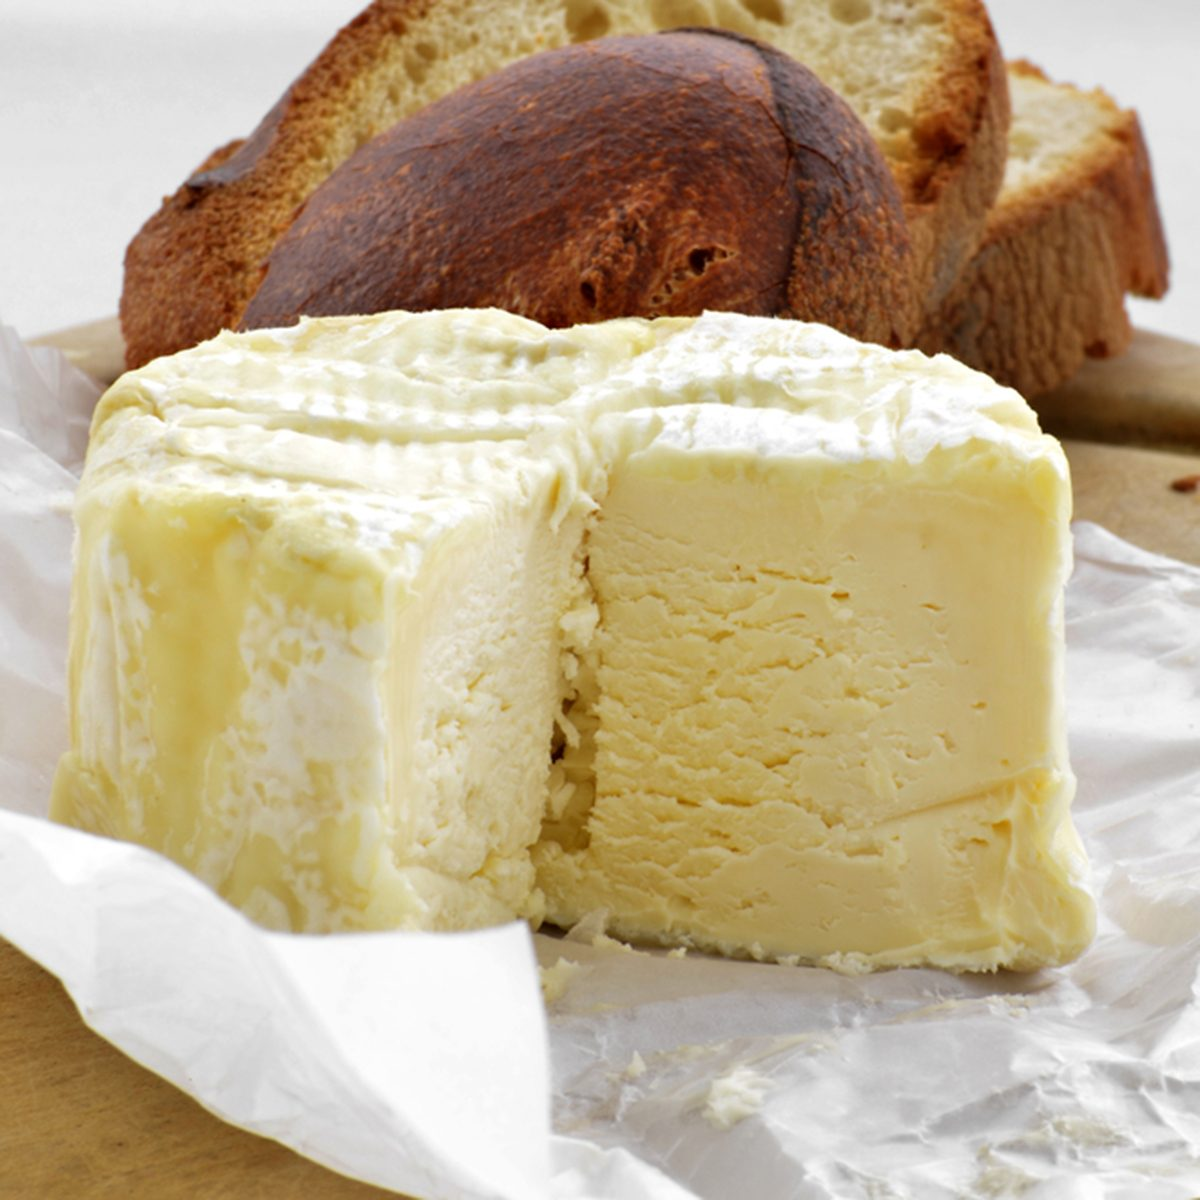 Brillat Savarin soft french cheese in waxed paper on a board with slices of rustic french bread